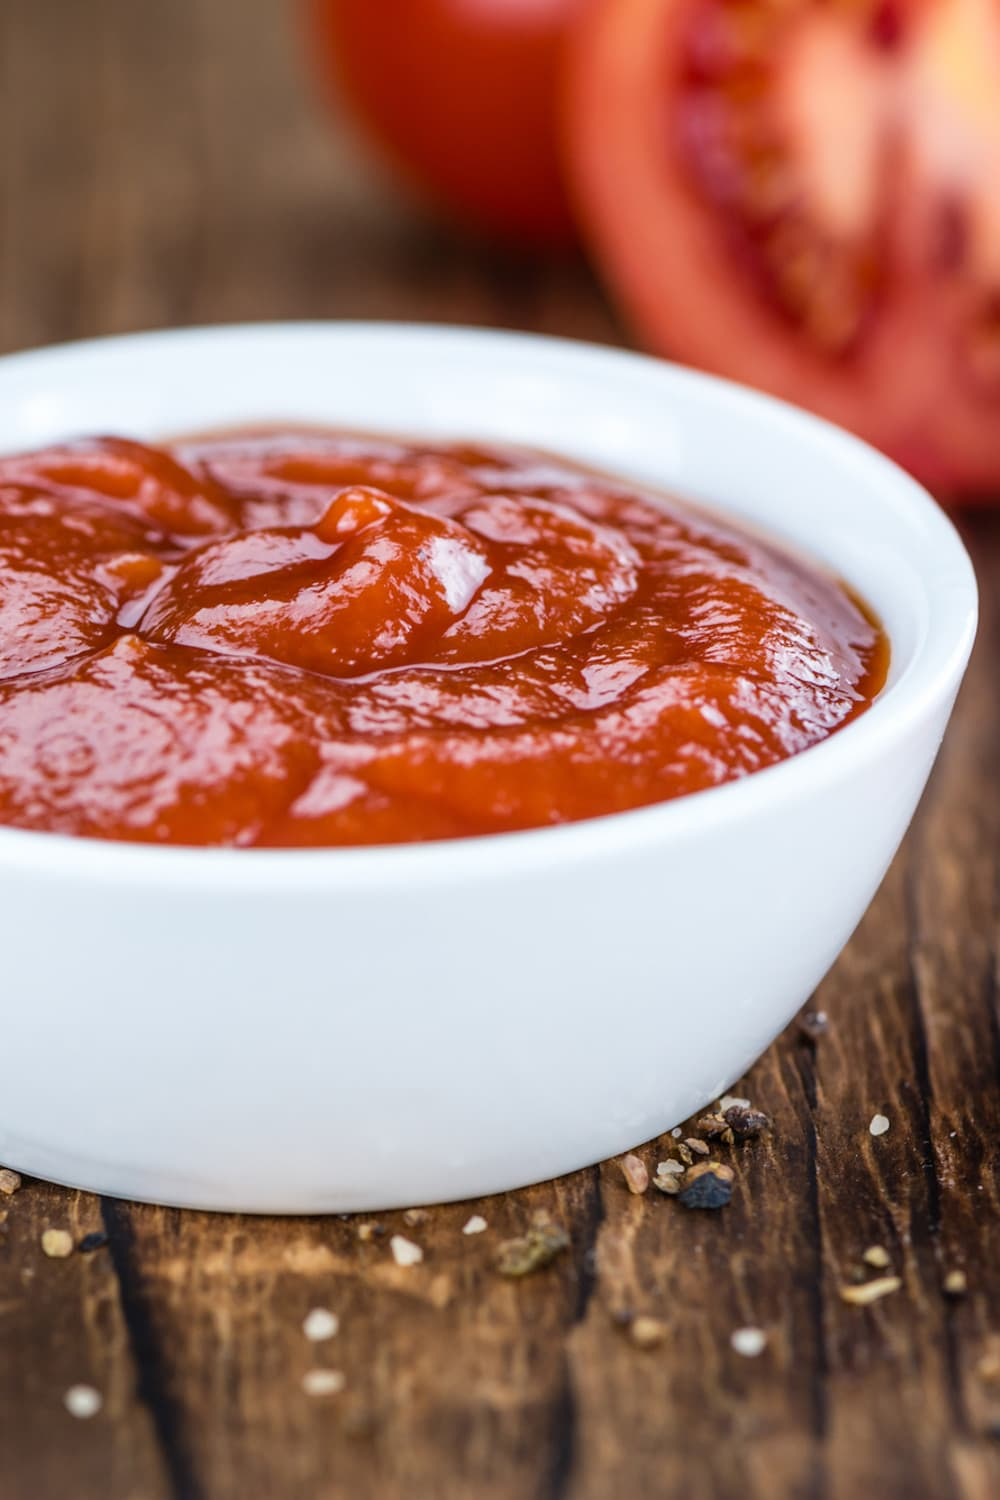 Vegan ketchup in a white bowl on a wooden table